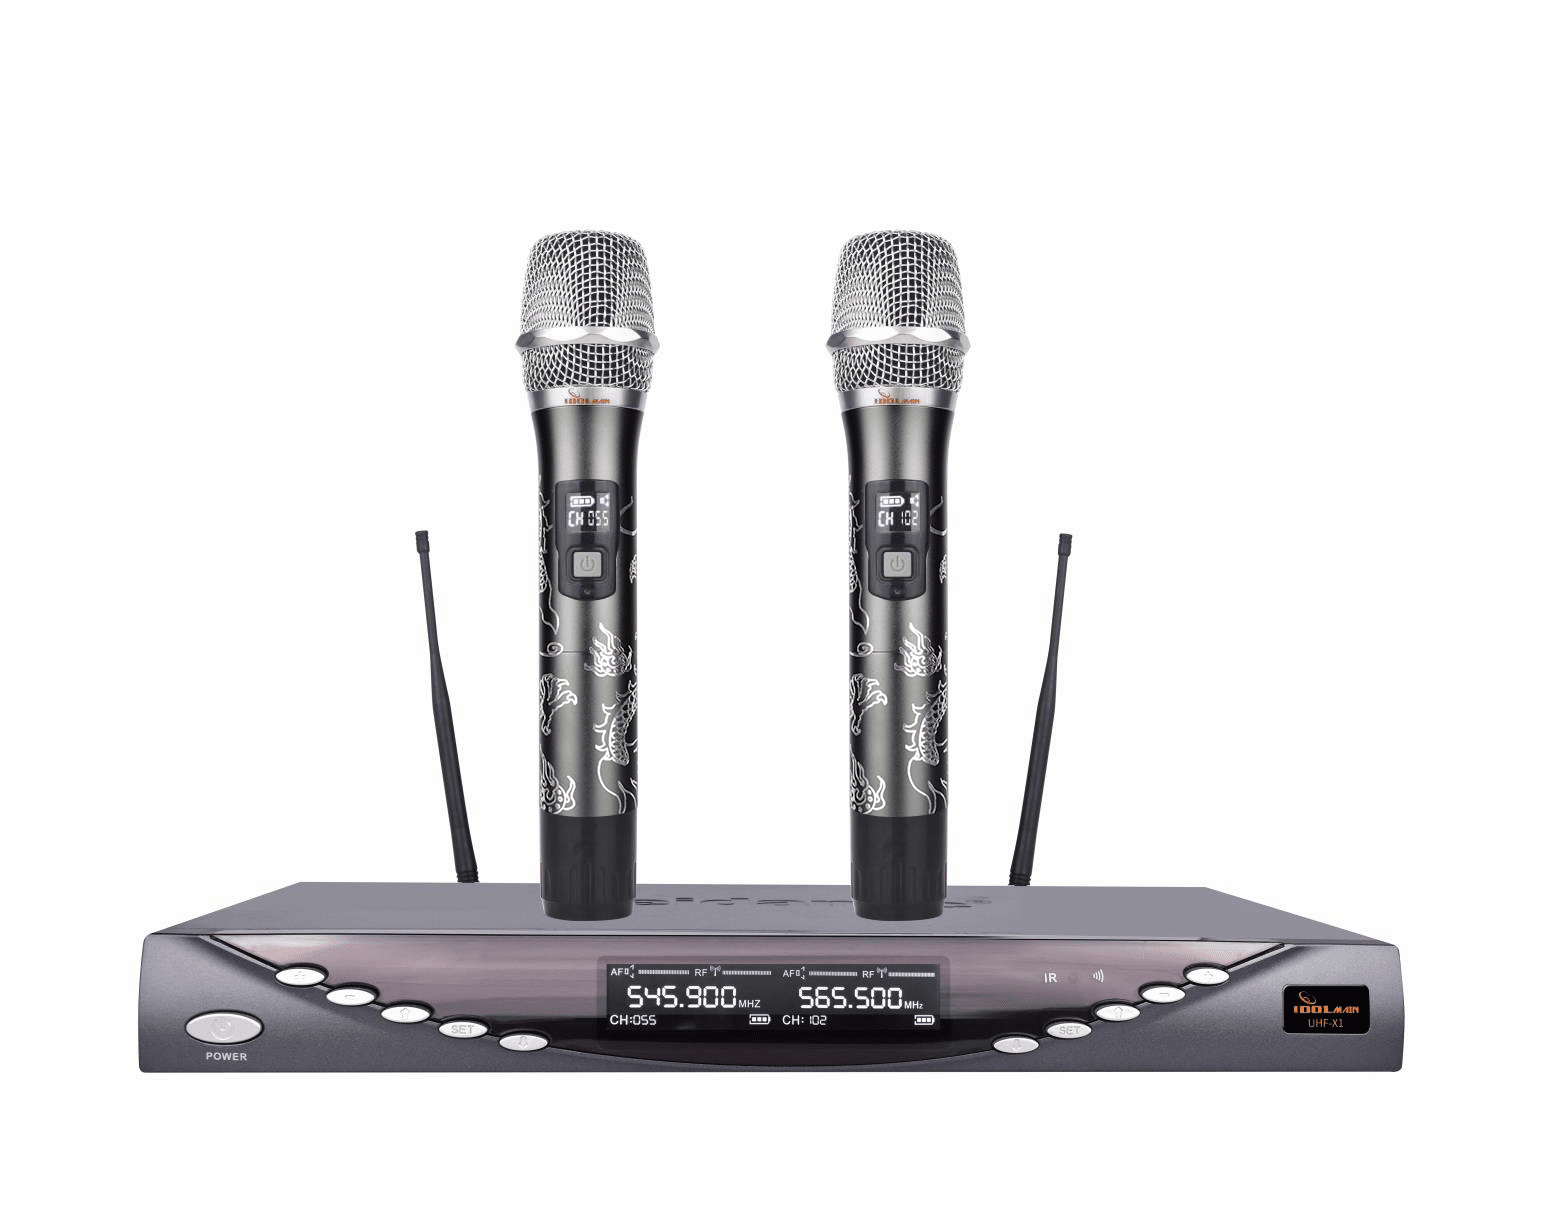 IDOLmain UHF-X1D Dragon Engraved-Limited Edition Professional Performance With Anti Feedback,Ultra Low Distortion, and No-Touch Frequency Scanning With  Digital Pilot Technology Dual Wireless Microphone System